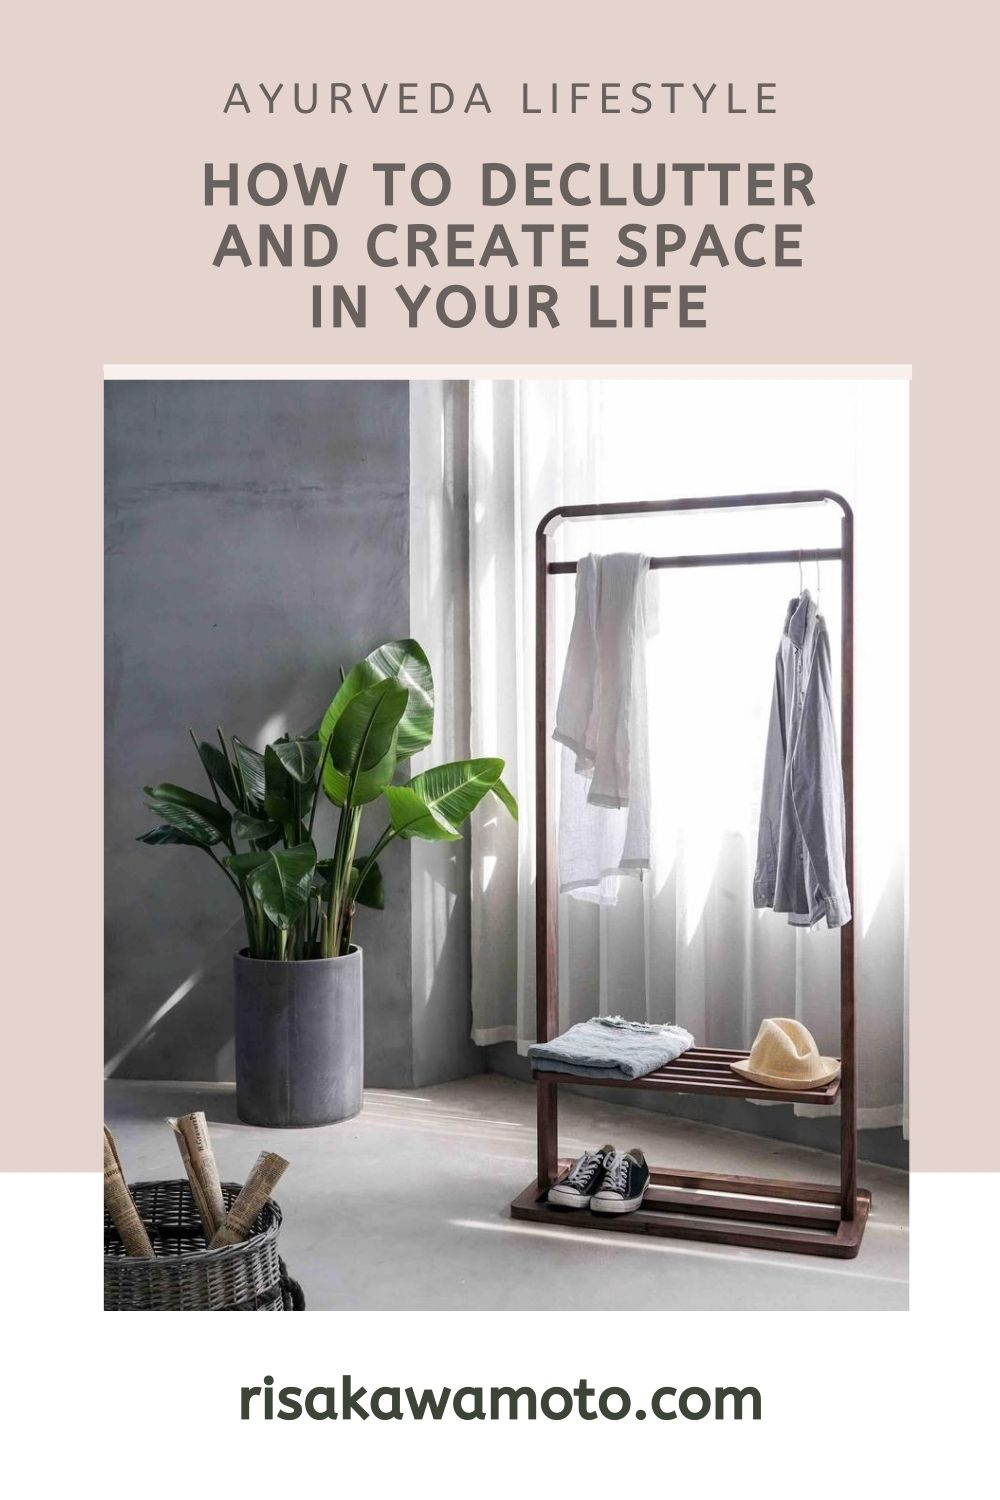 How to Declutter and Create Space in Your Life